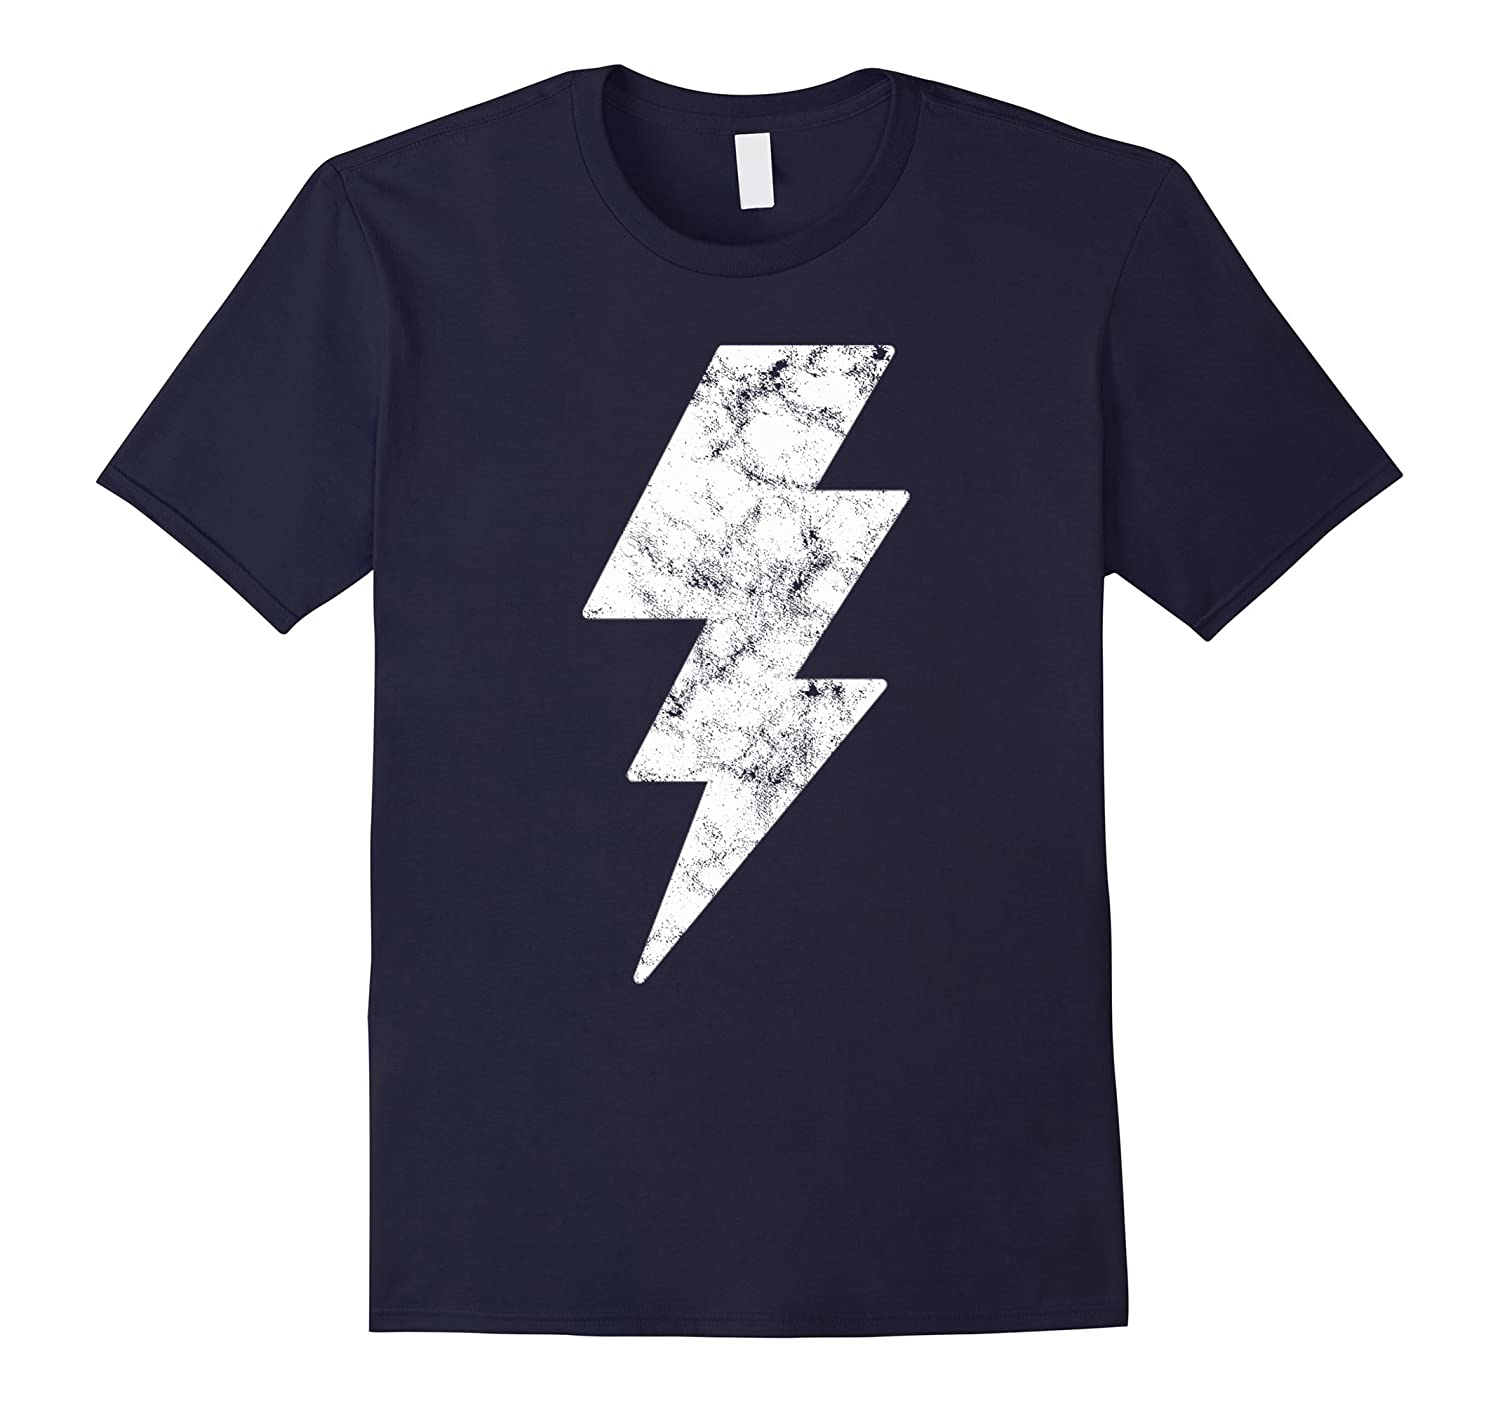 Lightning Bolt Tshirt White Design Casual Printed Tees Tops-FL